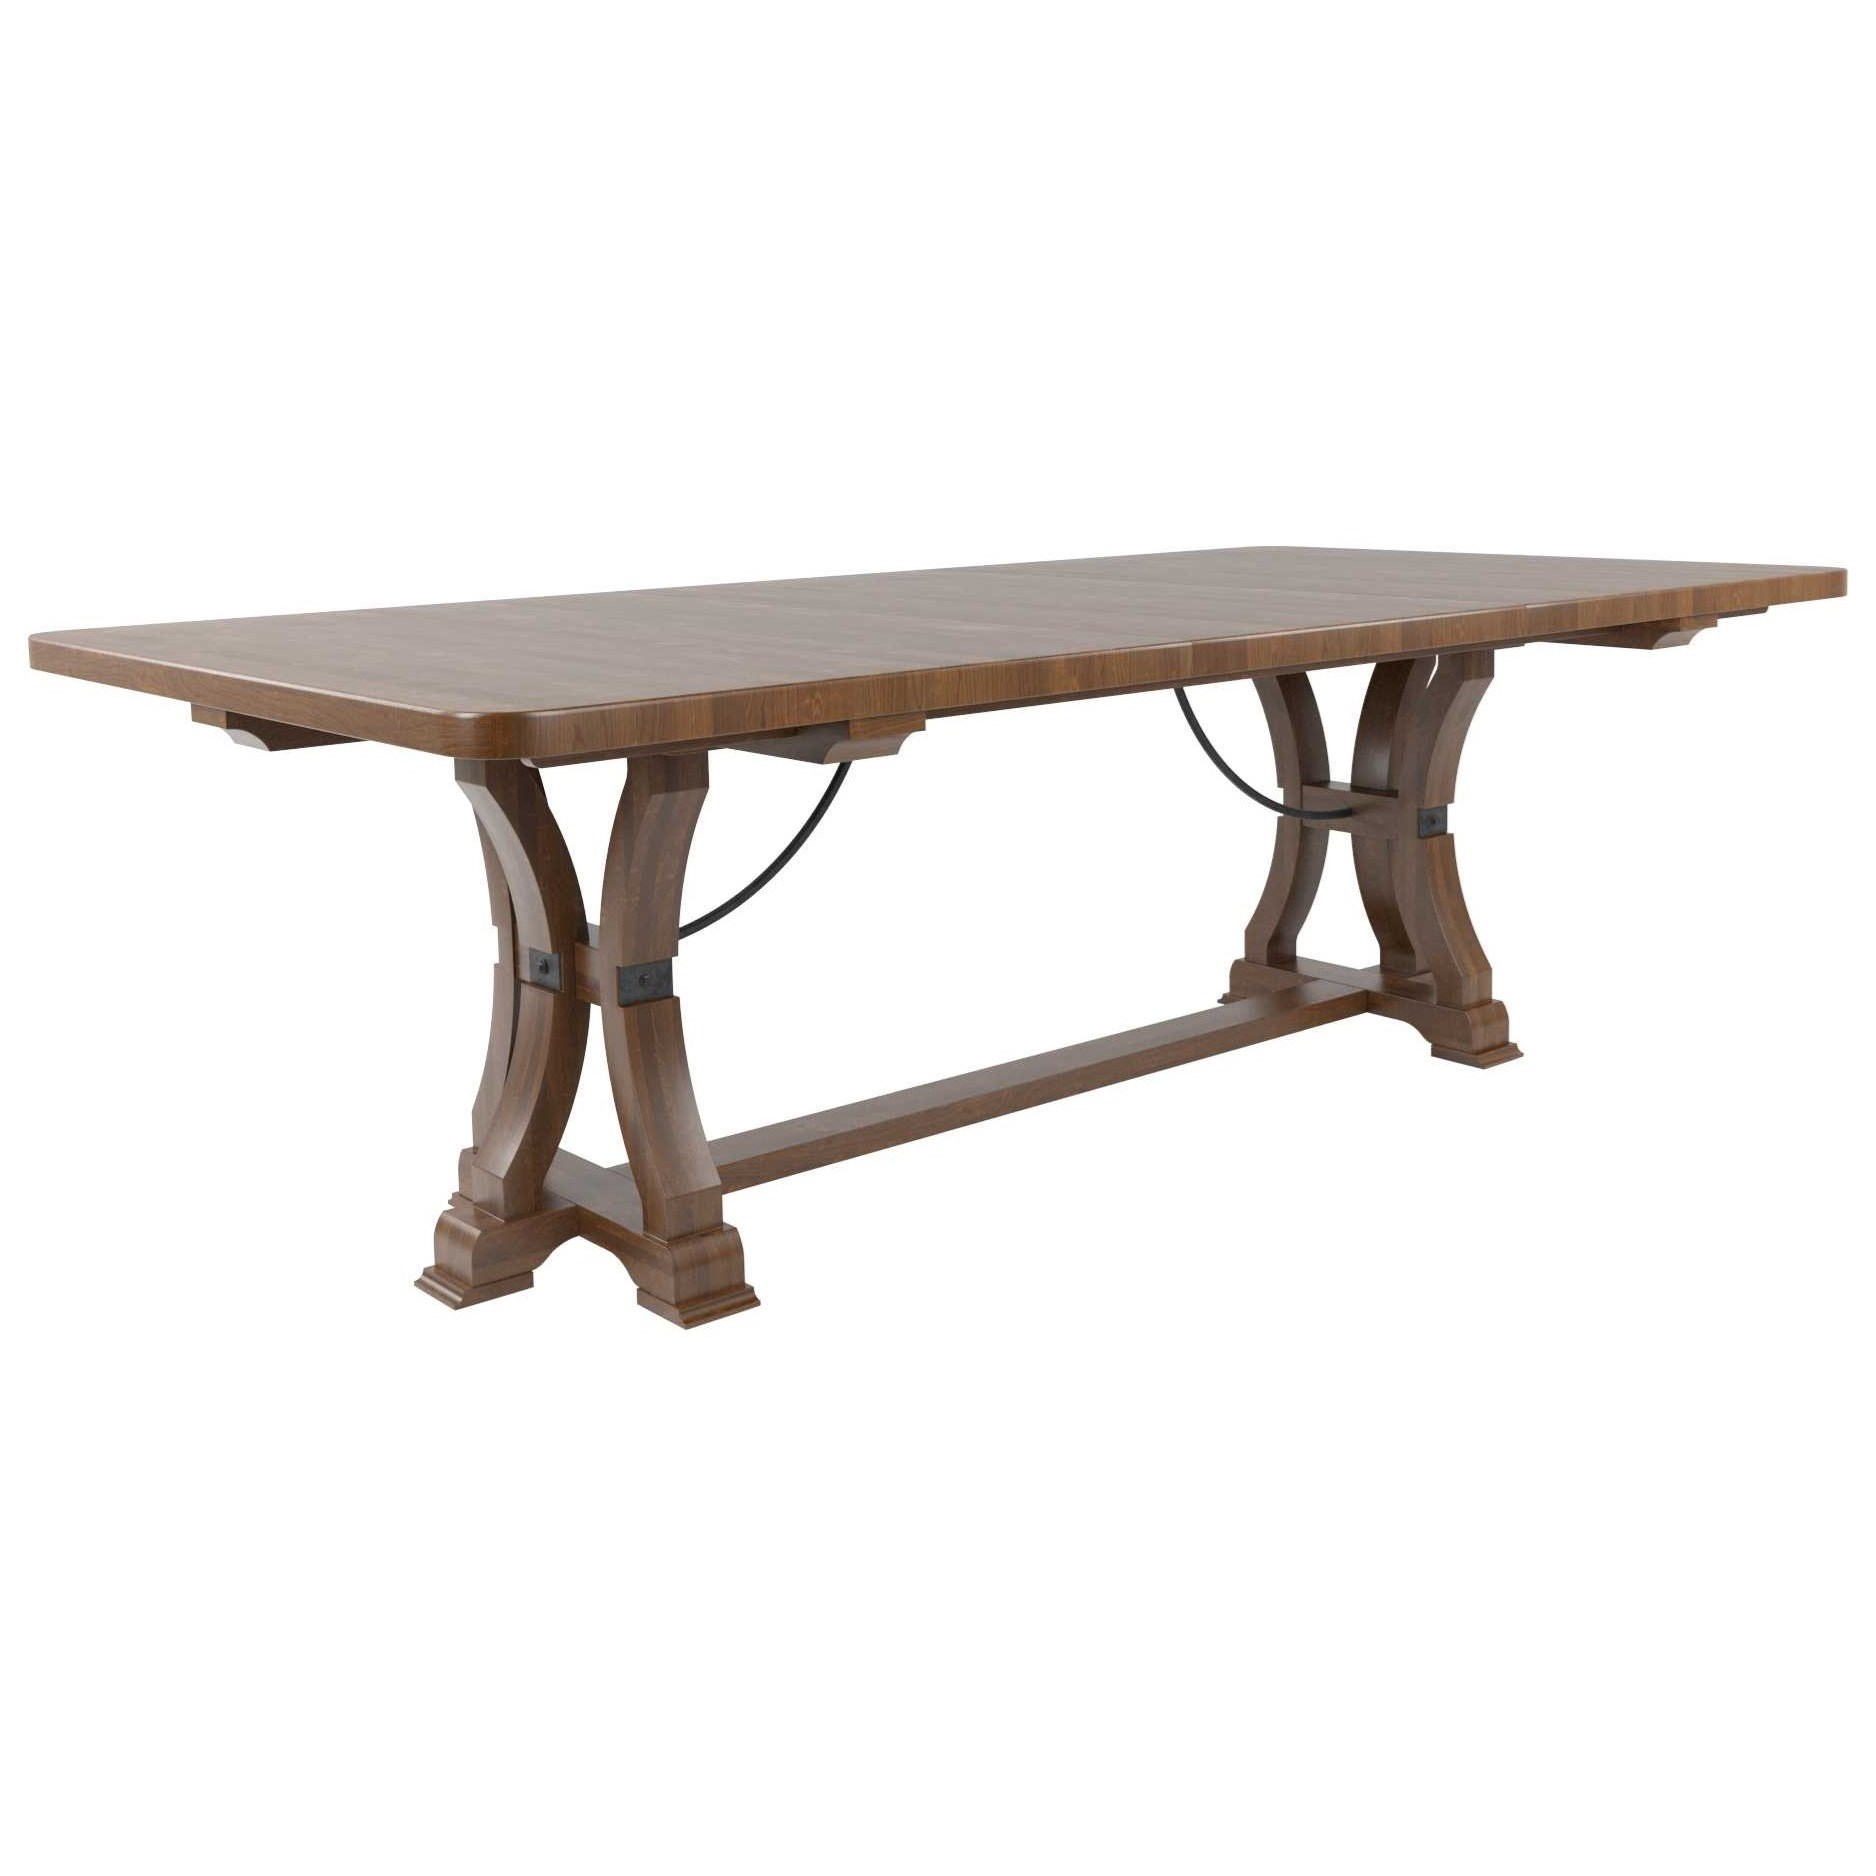 Farmhouse Customizable Dining Table by Canadel at Dinette Depot